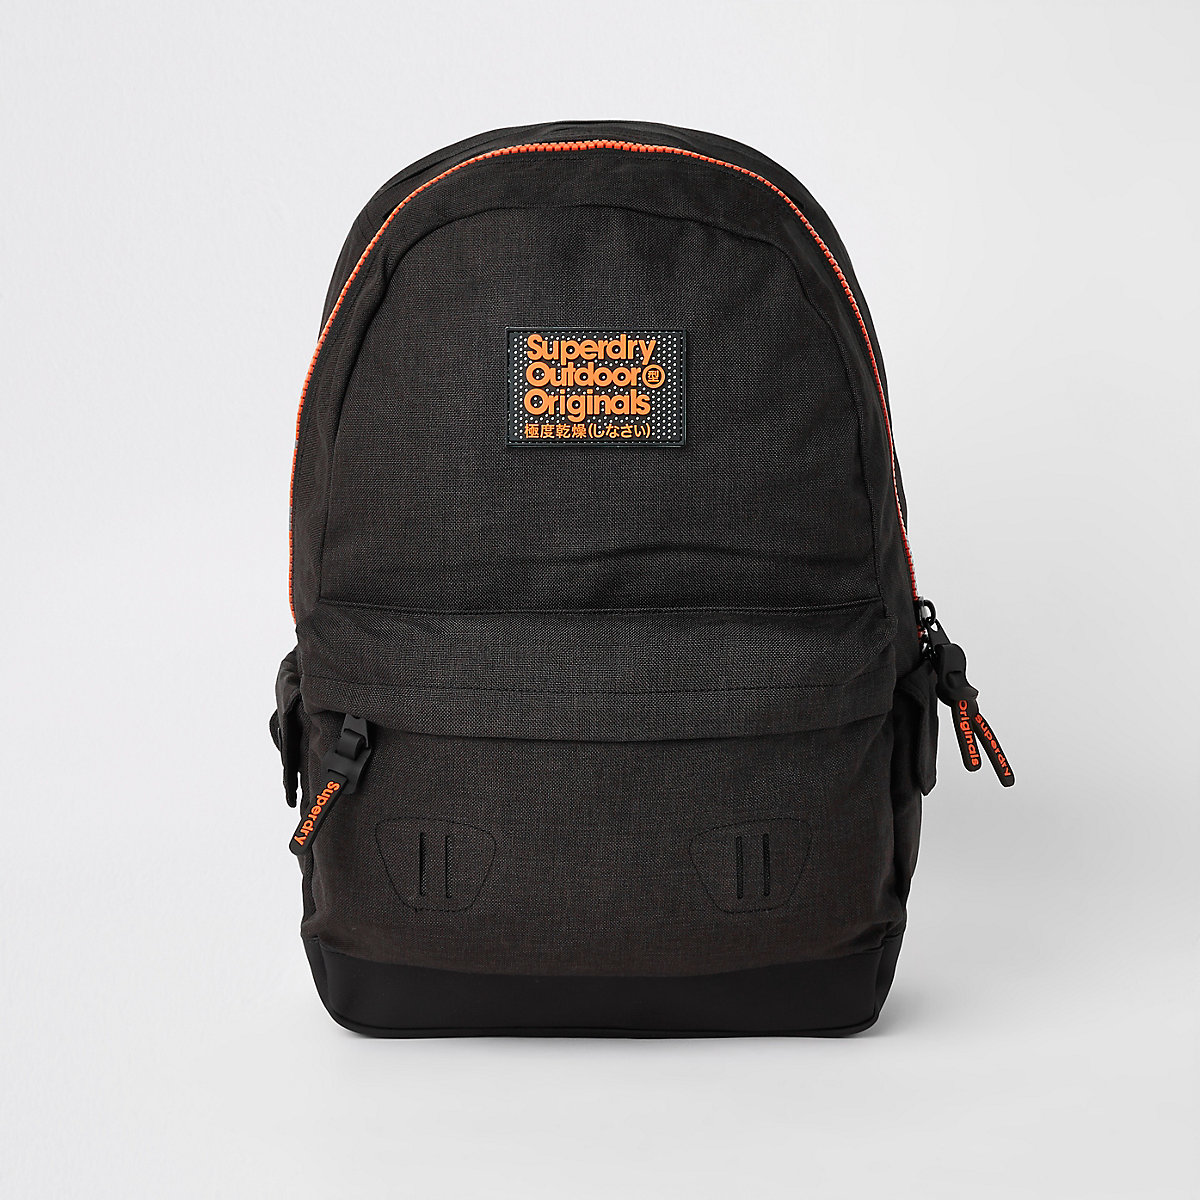 Superdry Originals black front logo backpack